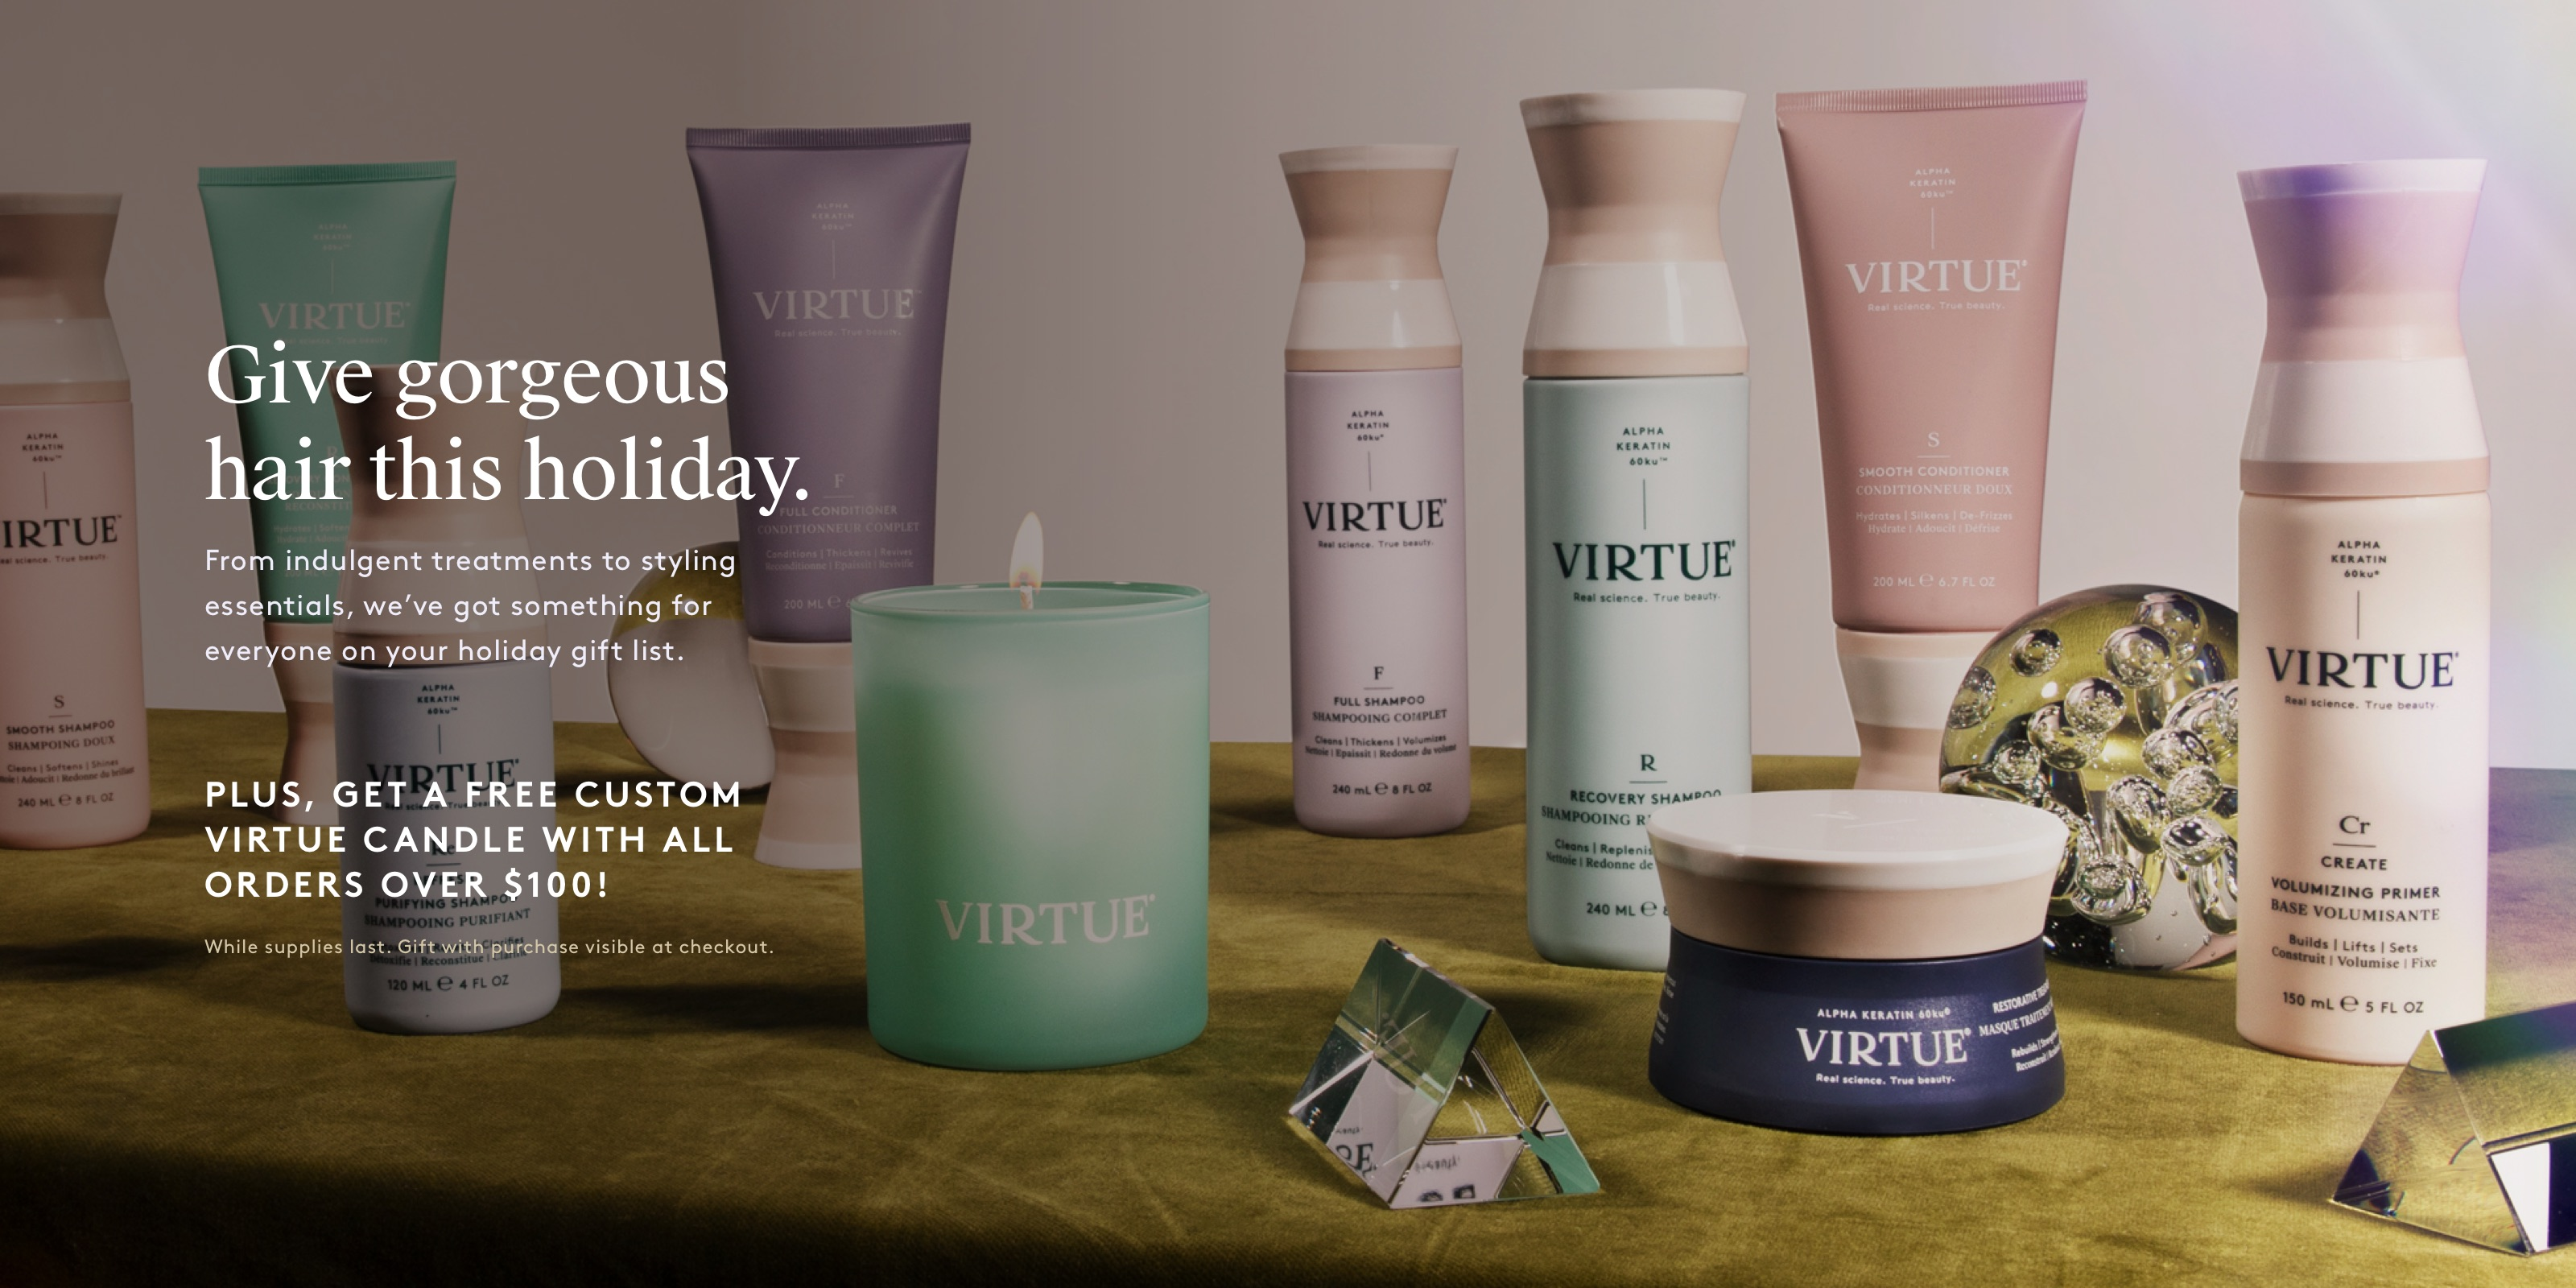 Get a Free Custom Virtue Candle With All Orders Over $100